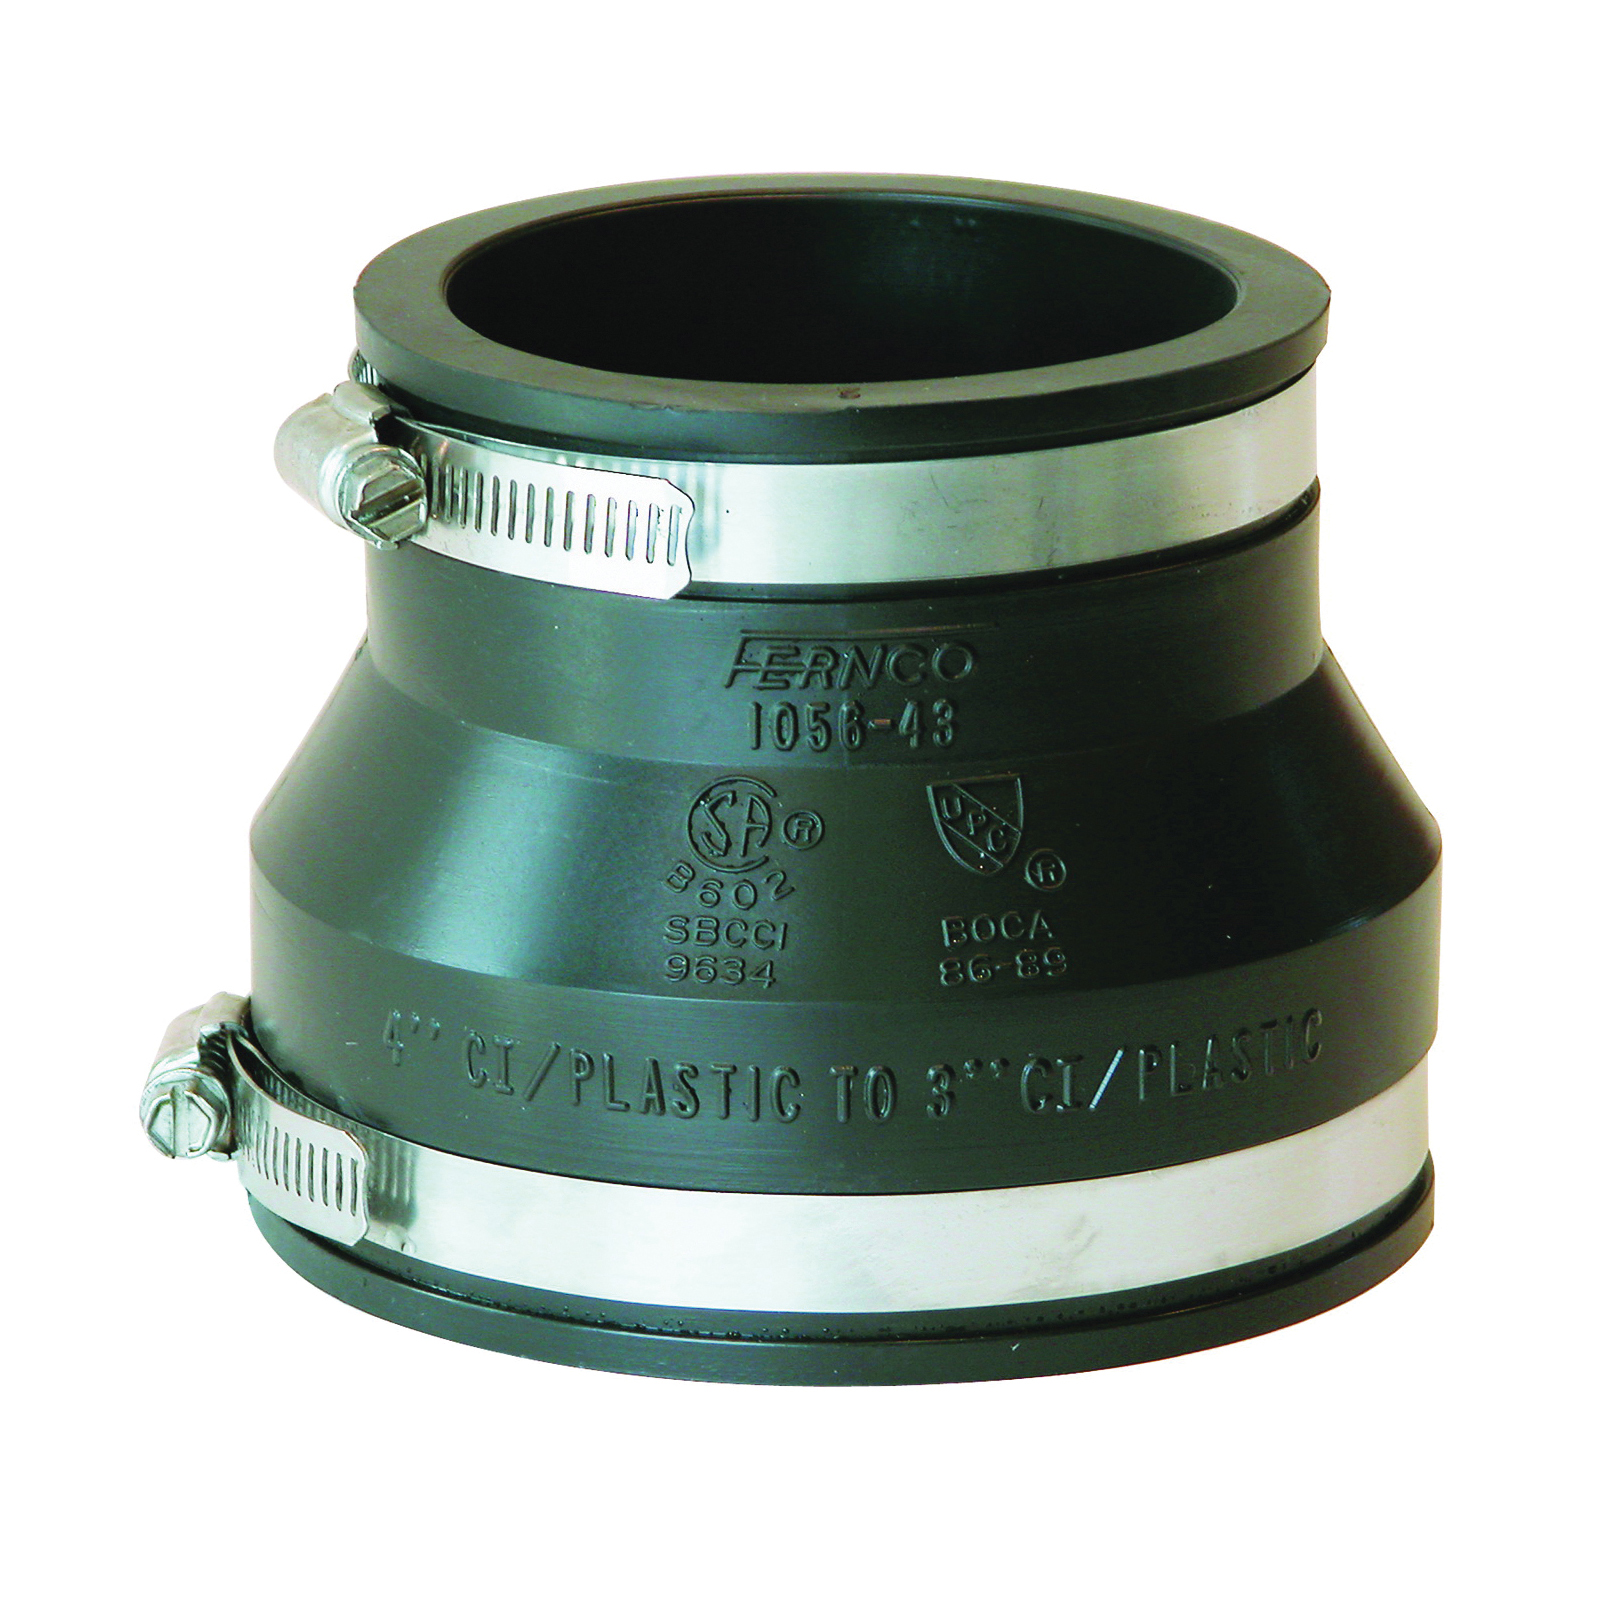 Picture of FERNCO P1056-43 Flexible Pipe Coupling, 4 x 3 in, PVC, Black, 4.3 psi Pressure